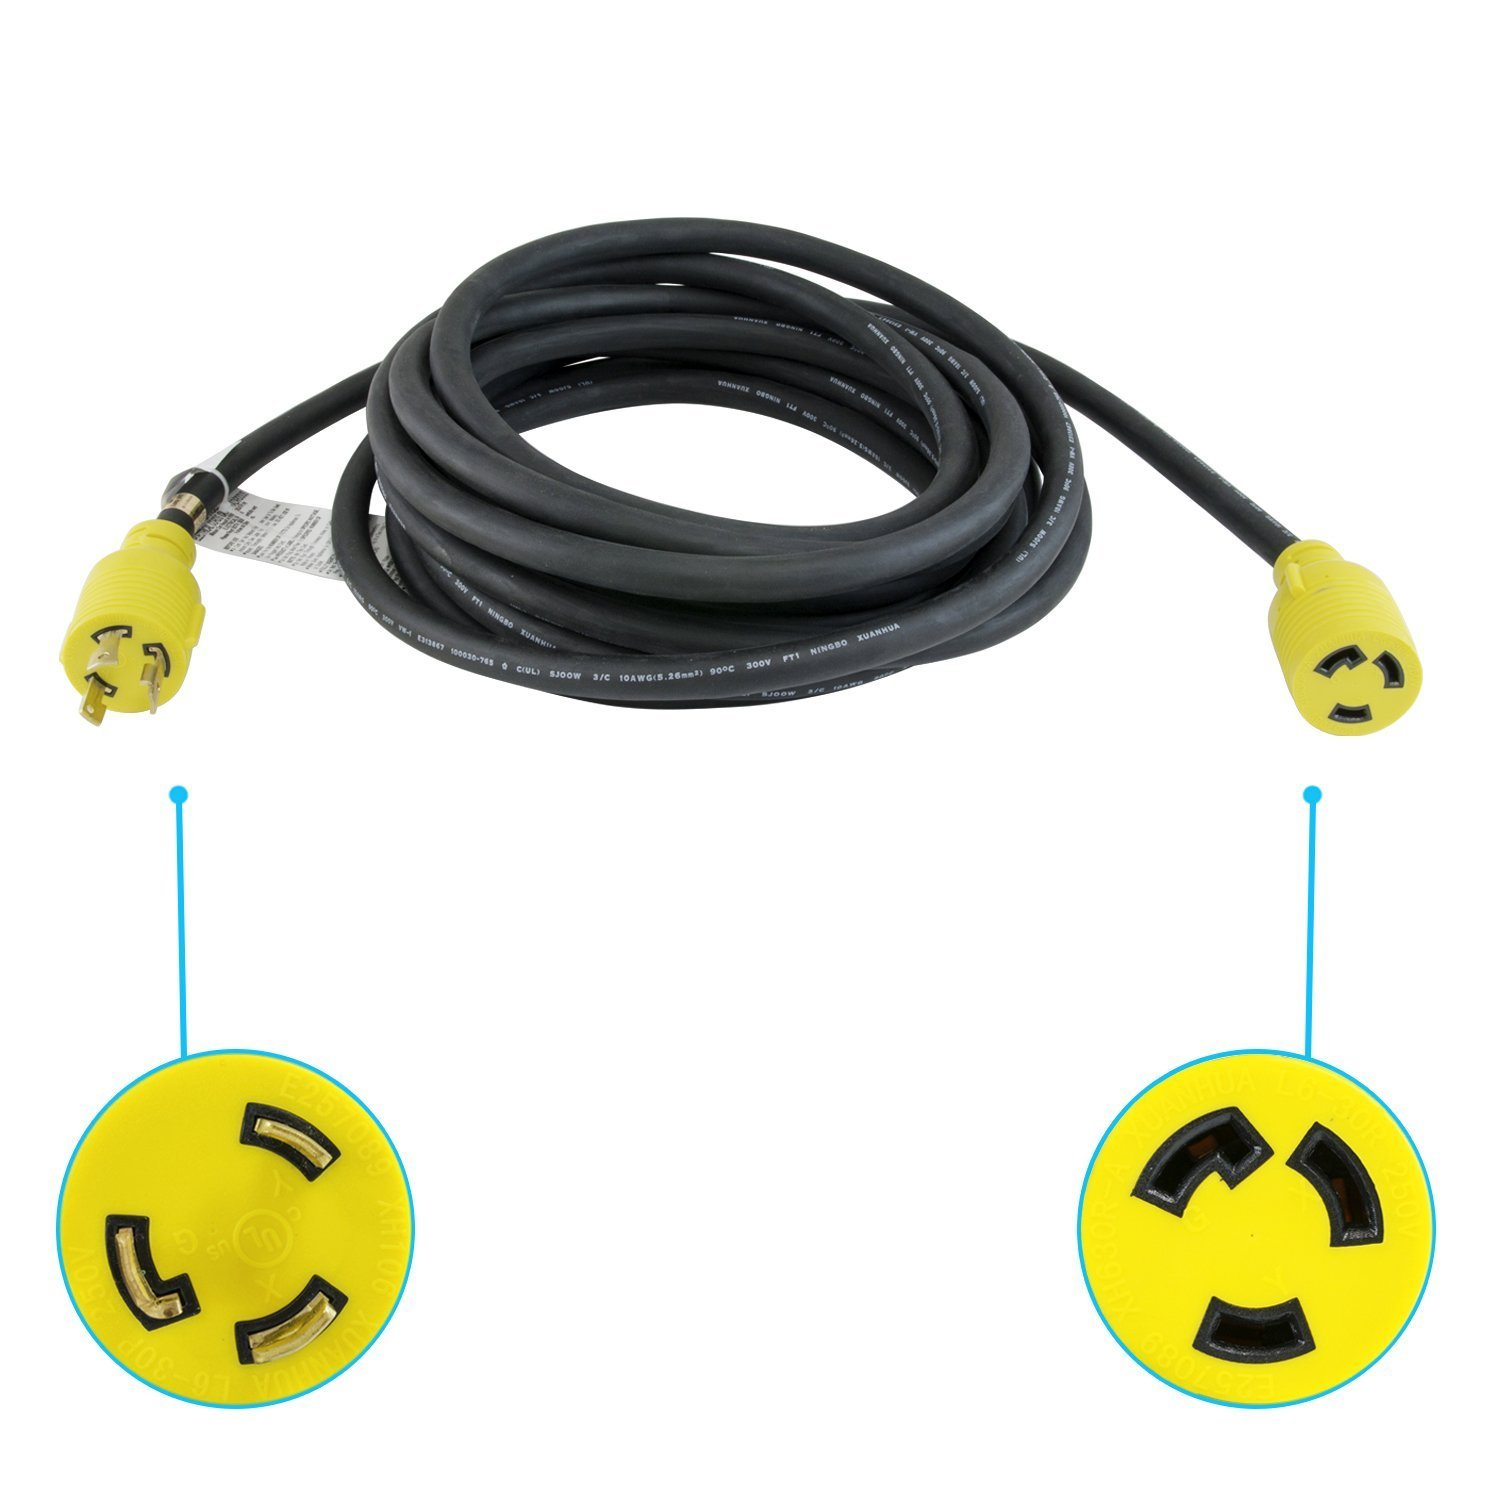 Houseables Extension Cord, Electric Wire, 3 Prong, 30 Amp, 250 Volt, Single, Black, 25 Ft, All Rubber, 10 Gauge, Heavy Duty, L6-30, Commercial, Electrical Power, Generator Cable, With Locking Switch